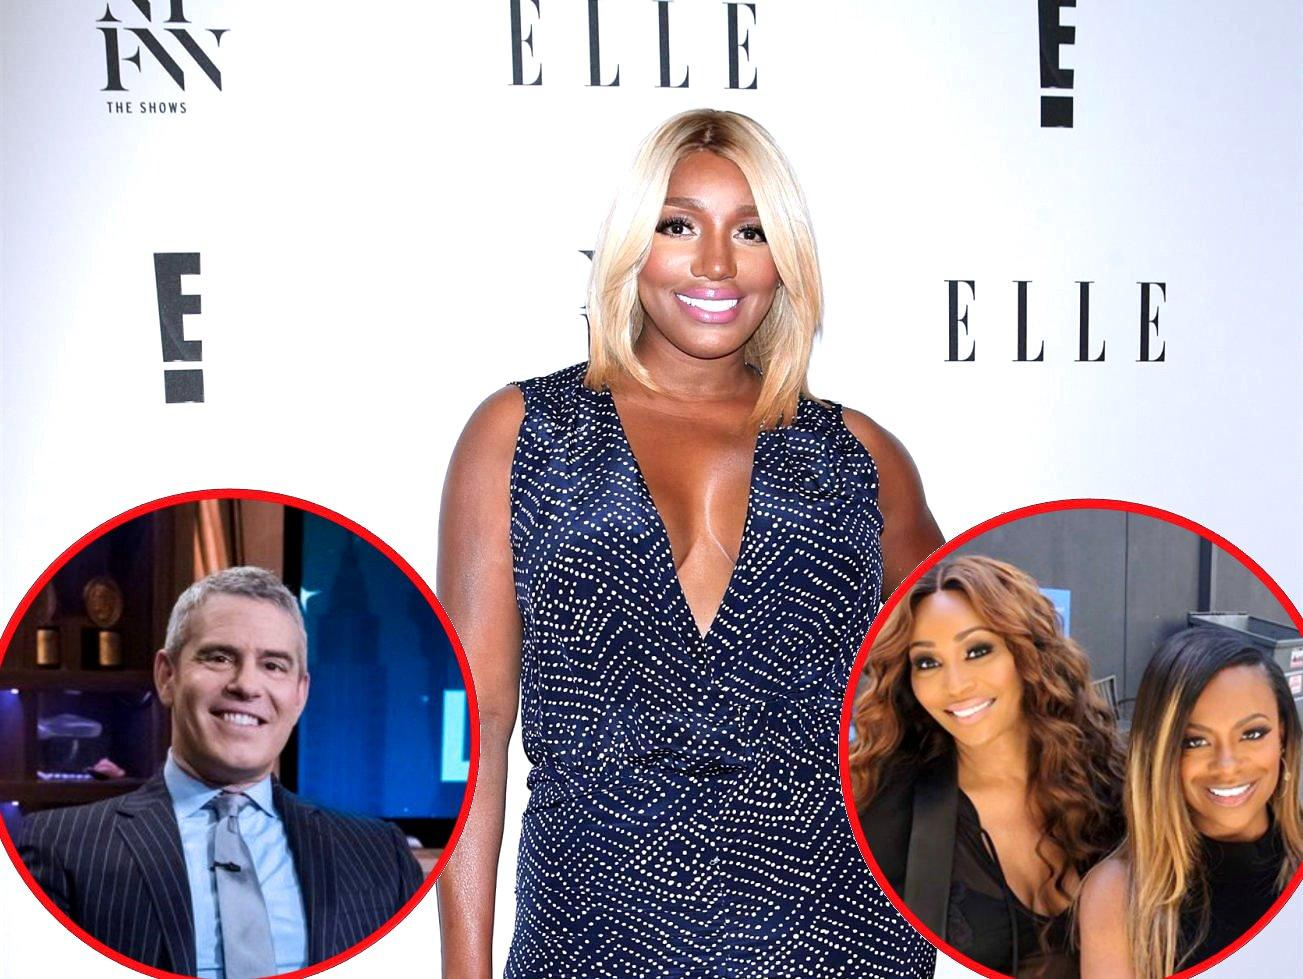 Nene Leakes Says There Are Things That Happen Behind-The-Scenes That Viewers Don't Get To See And It's Not Fair